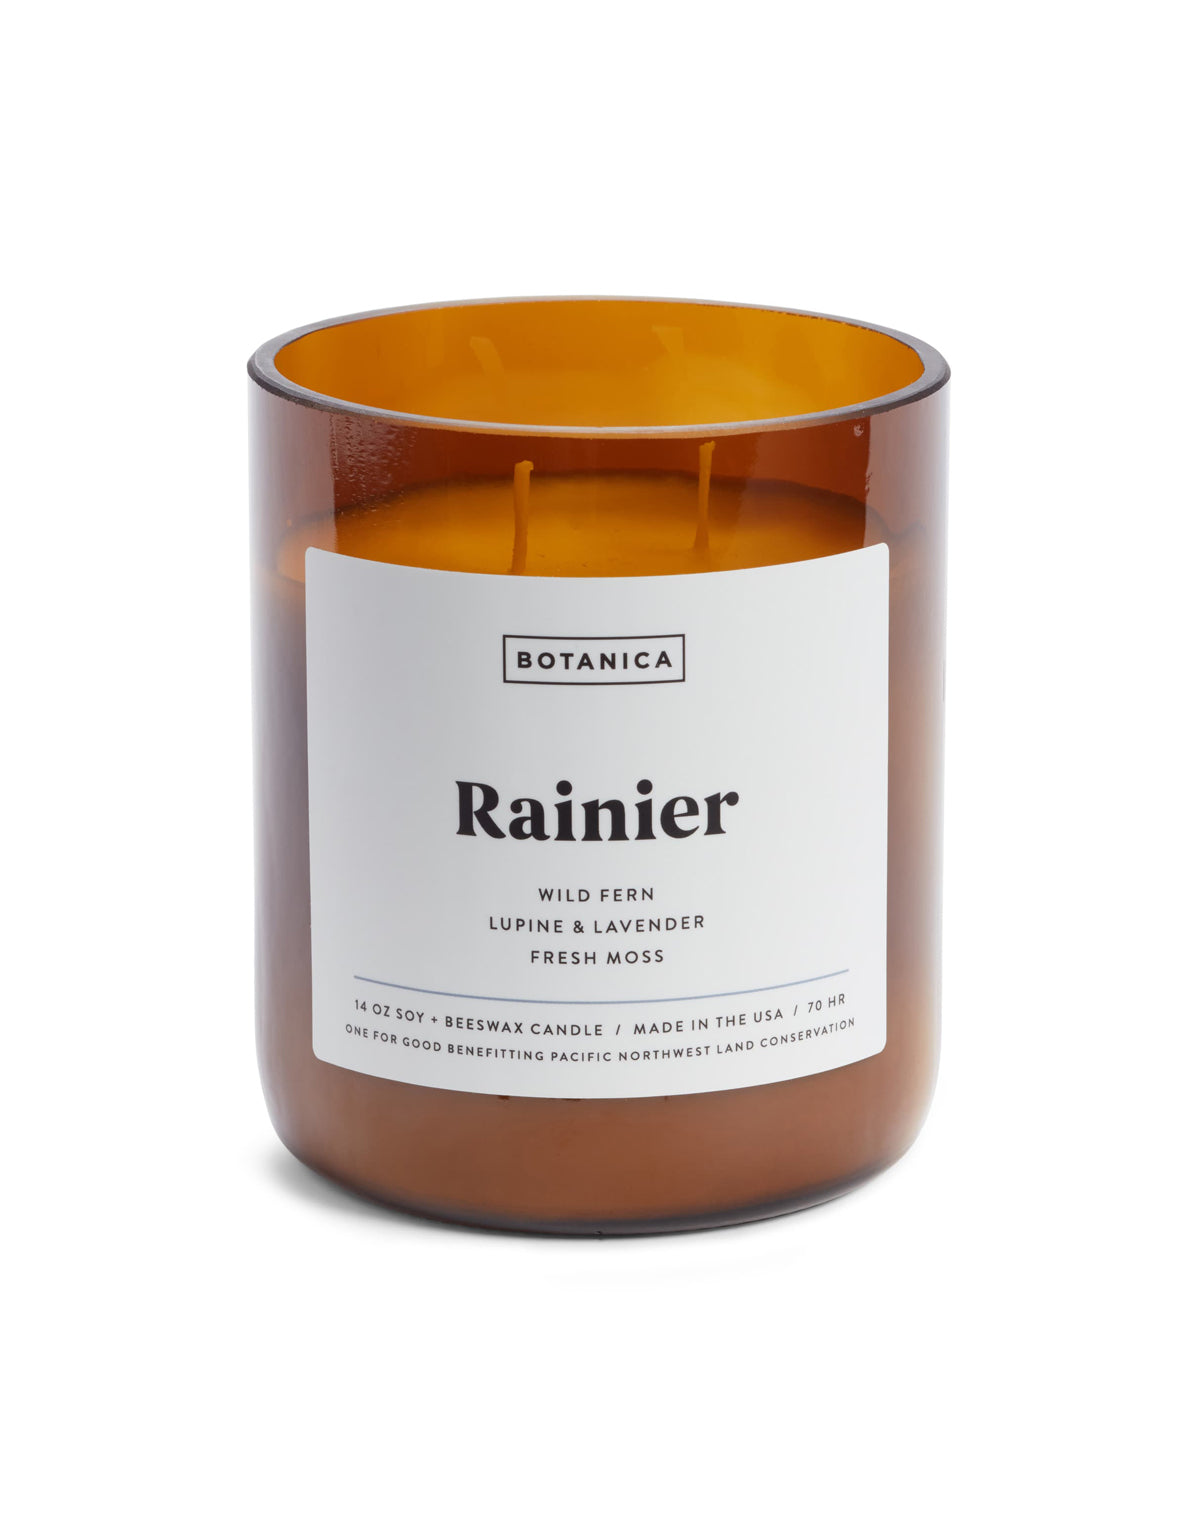 Botanica Large Candle Rainier